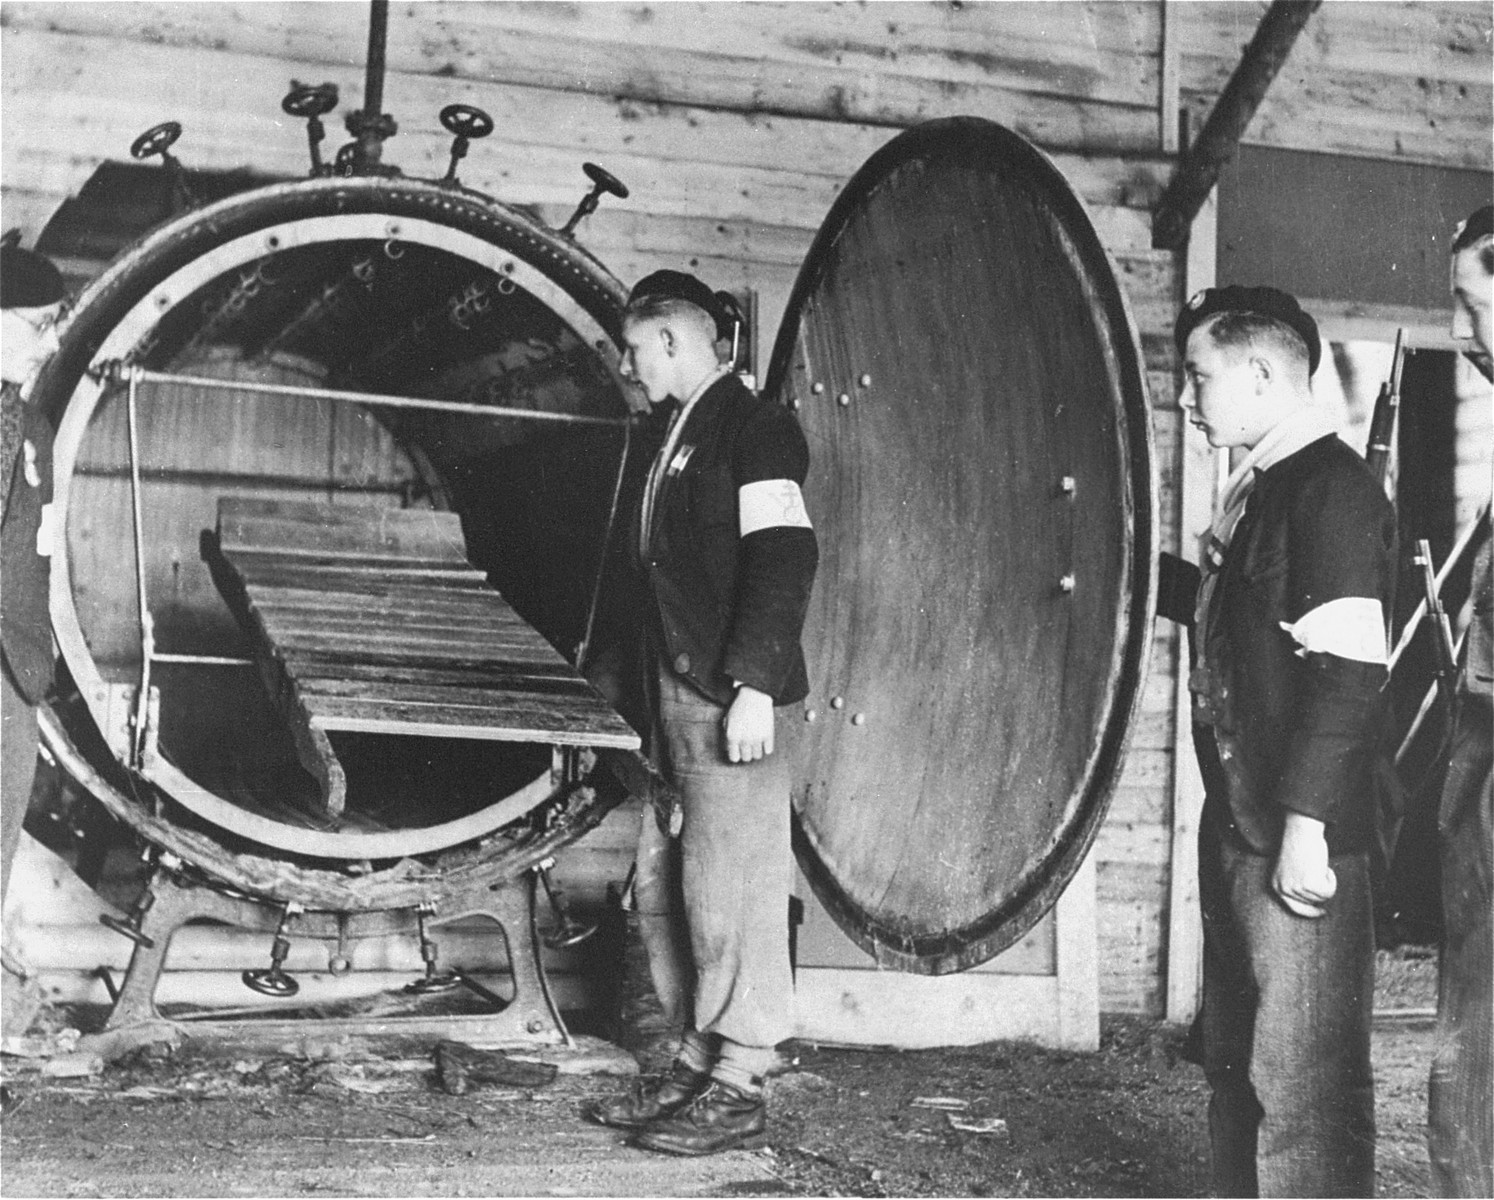 Men with the French forces of the Interior examine a tank containing a wooden stretcher that is believed to be an experimental gas chamber.